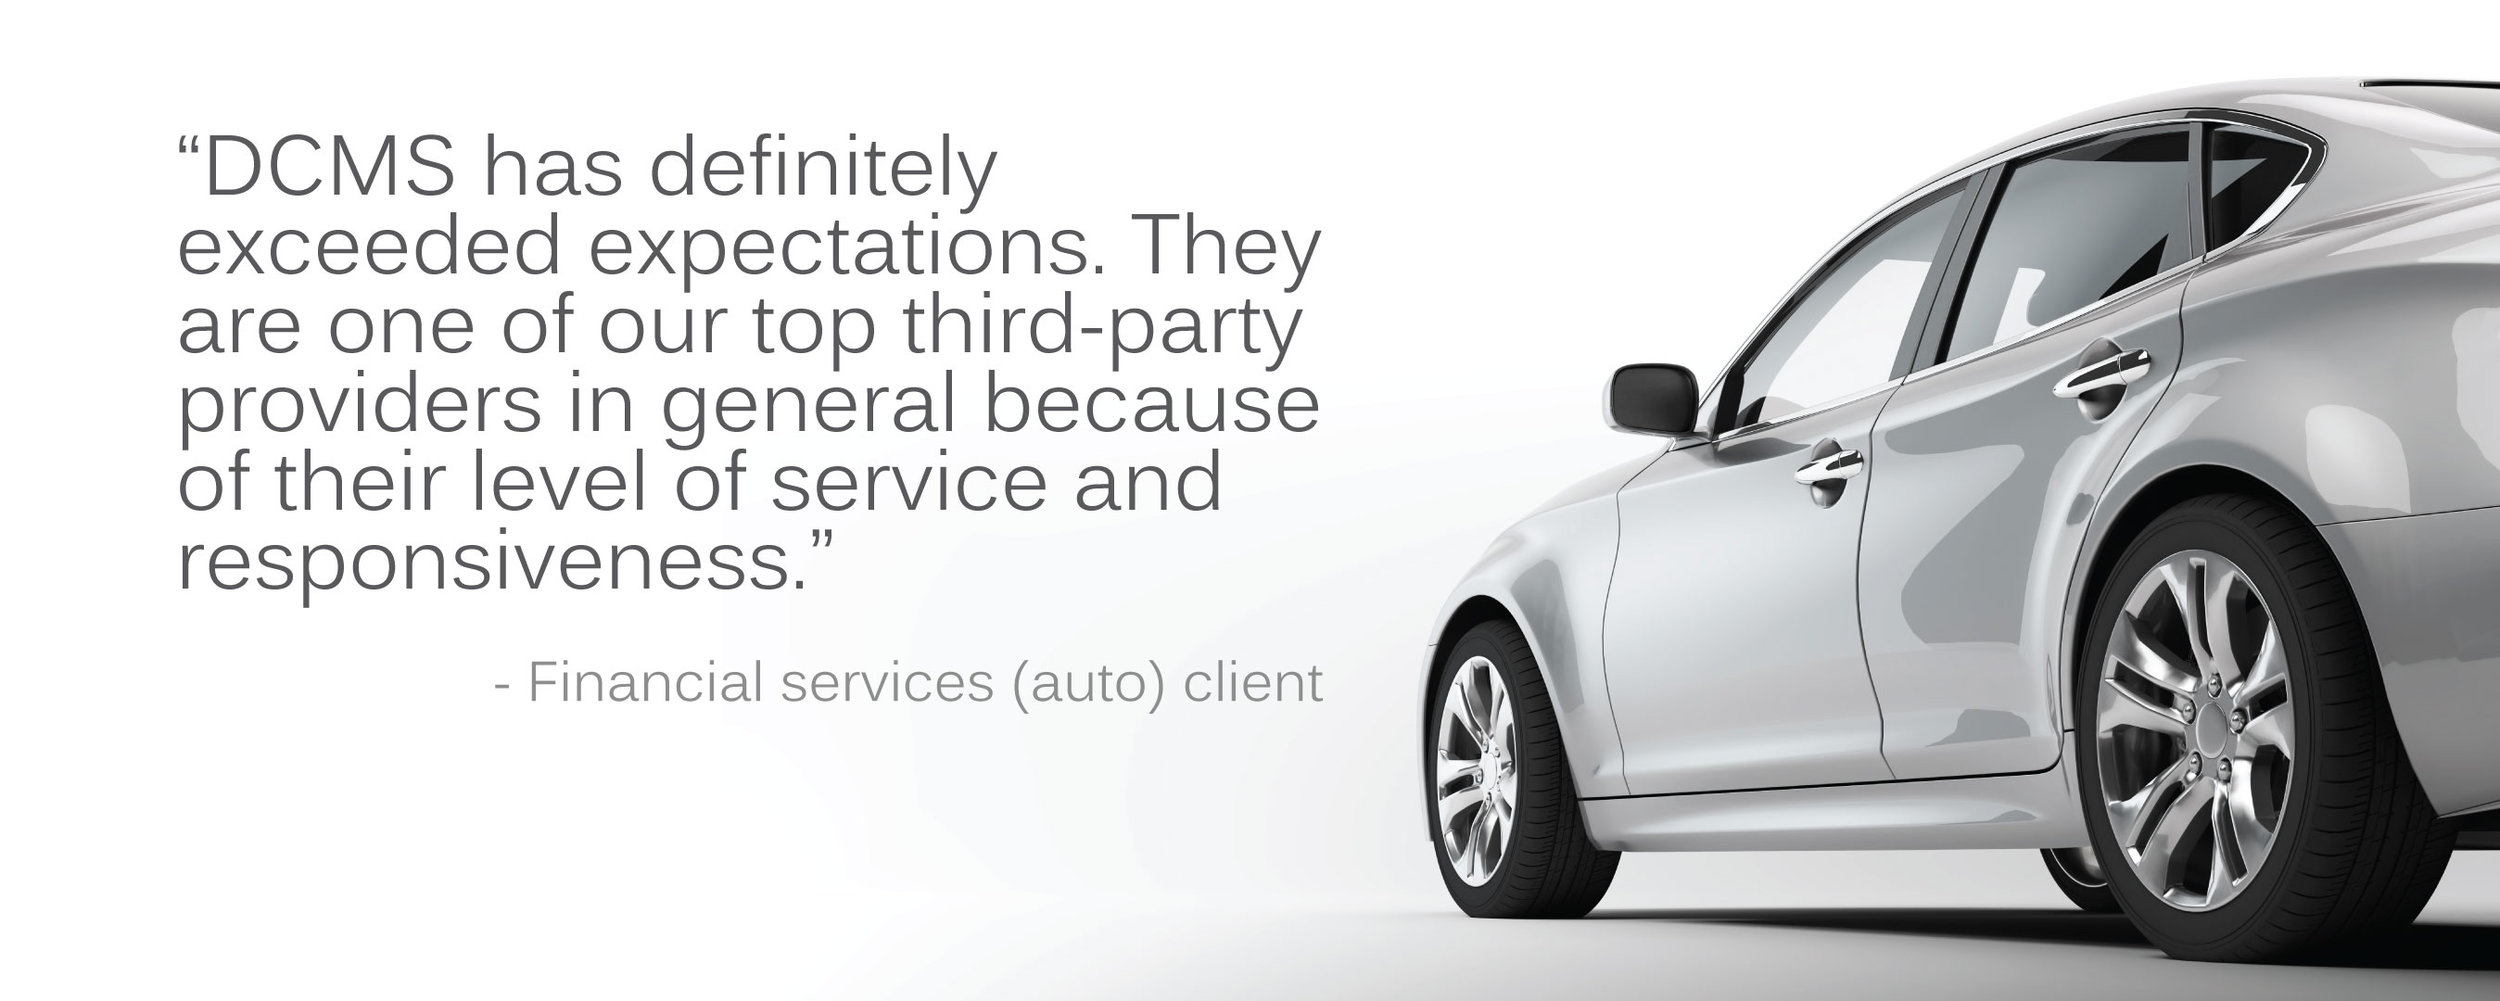 "Auto client testimonial: ""DCMS has definitely exceeded expectations. They are one of of our top third-party providers in general because of their level of service and responsiveness."""